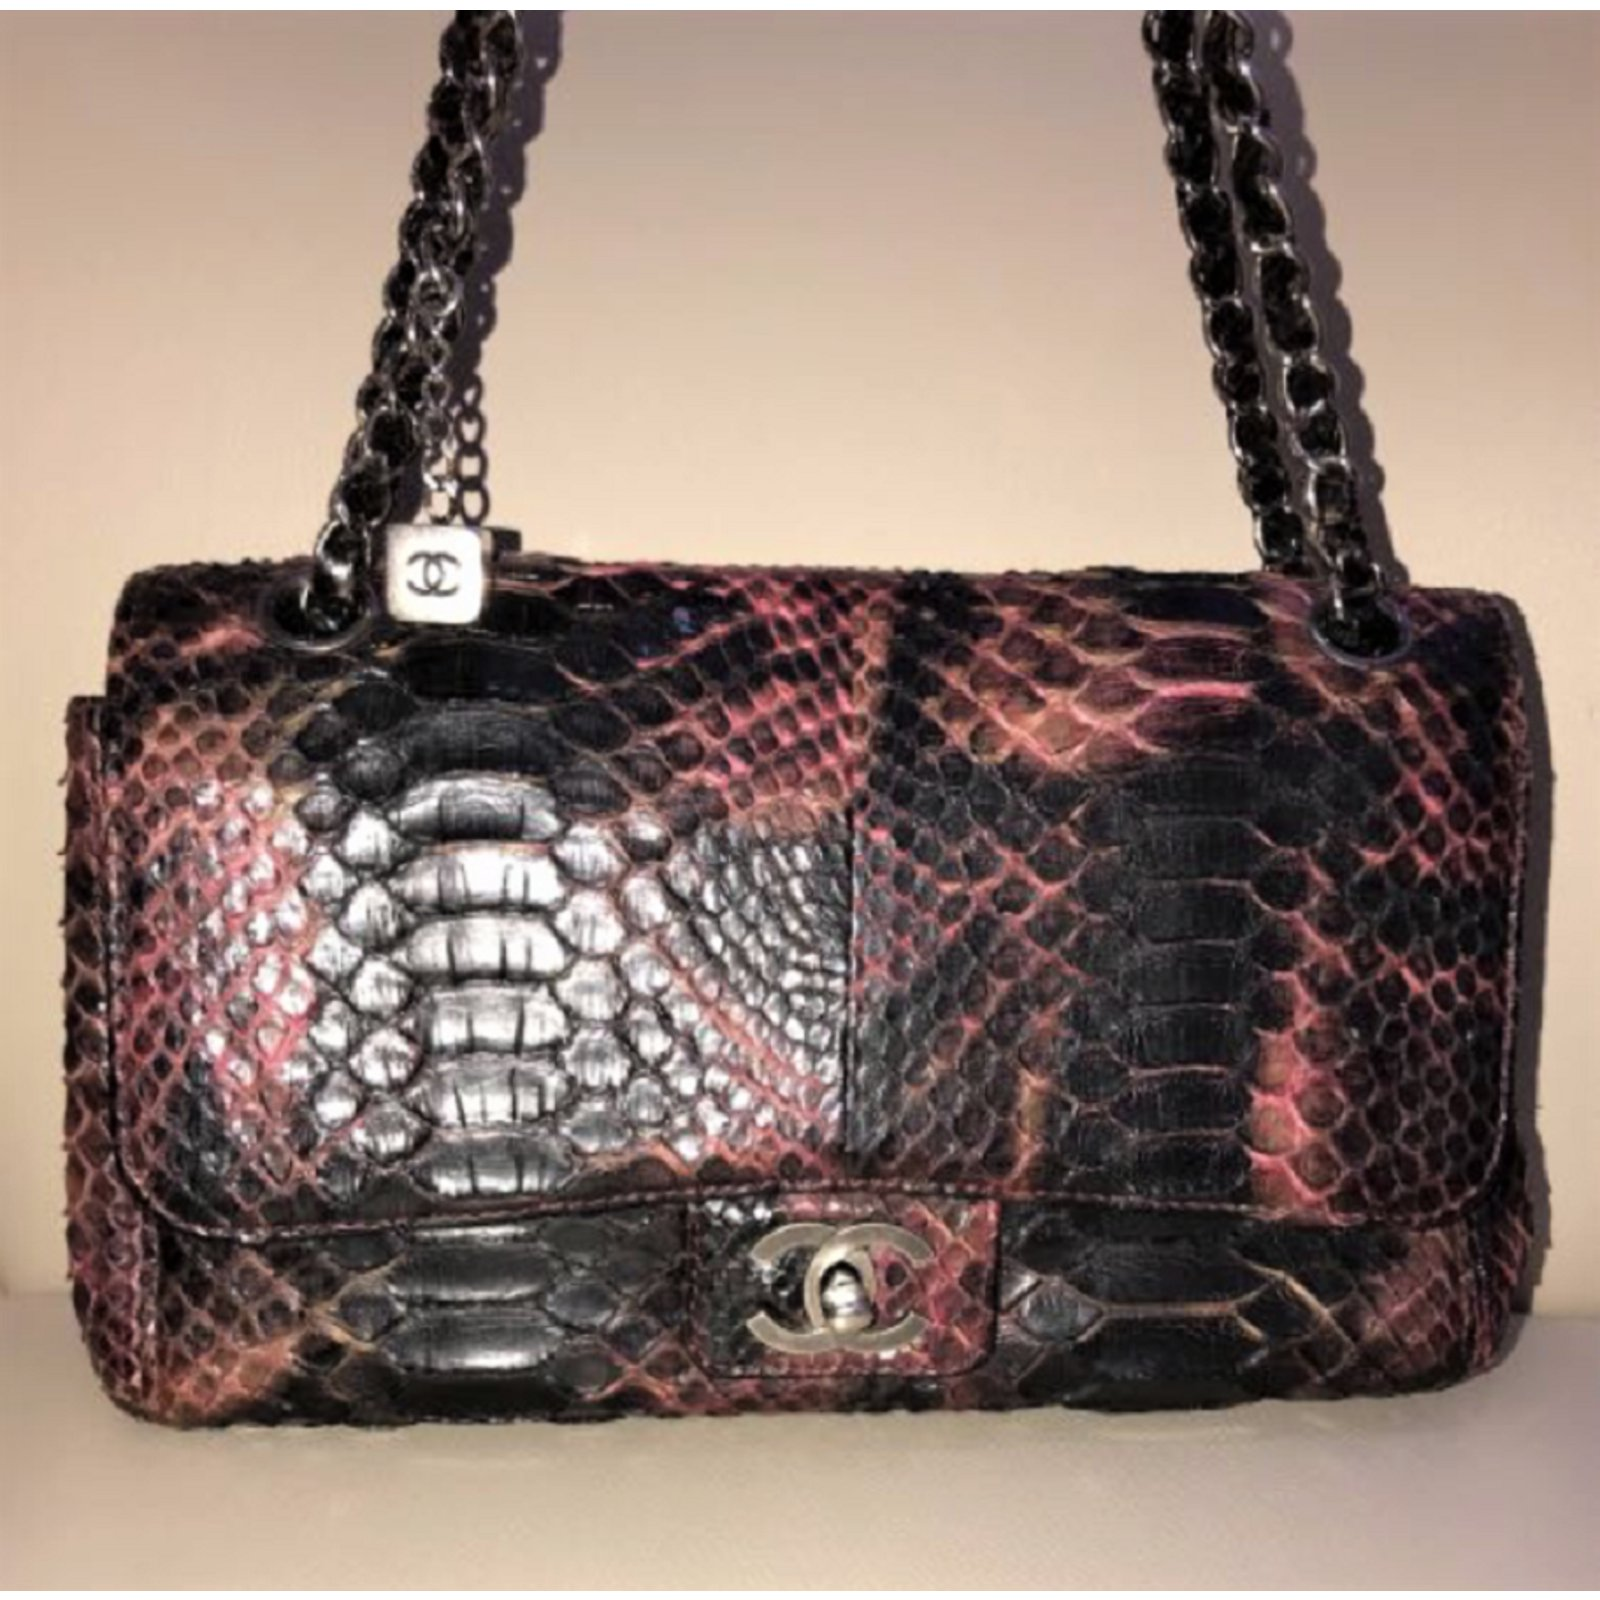 ba652601d820 Chanel Snakeskin Medium Flap bag Handbags Python Python print ref.89142 -  Joli Closet